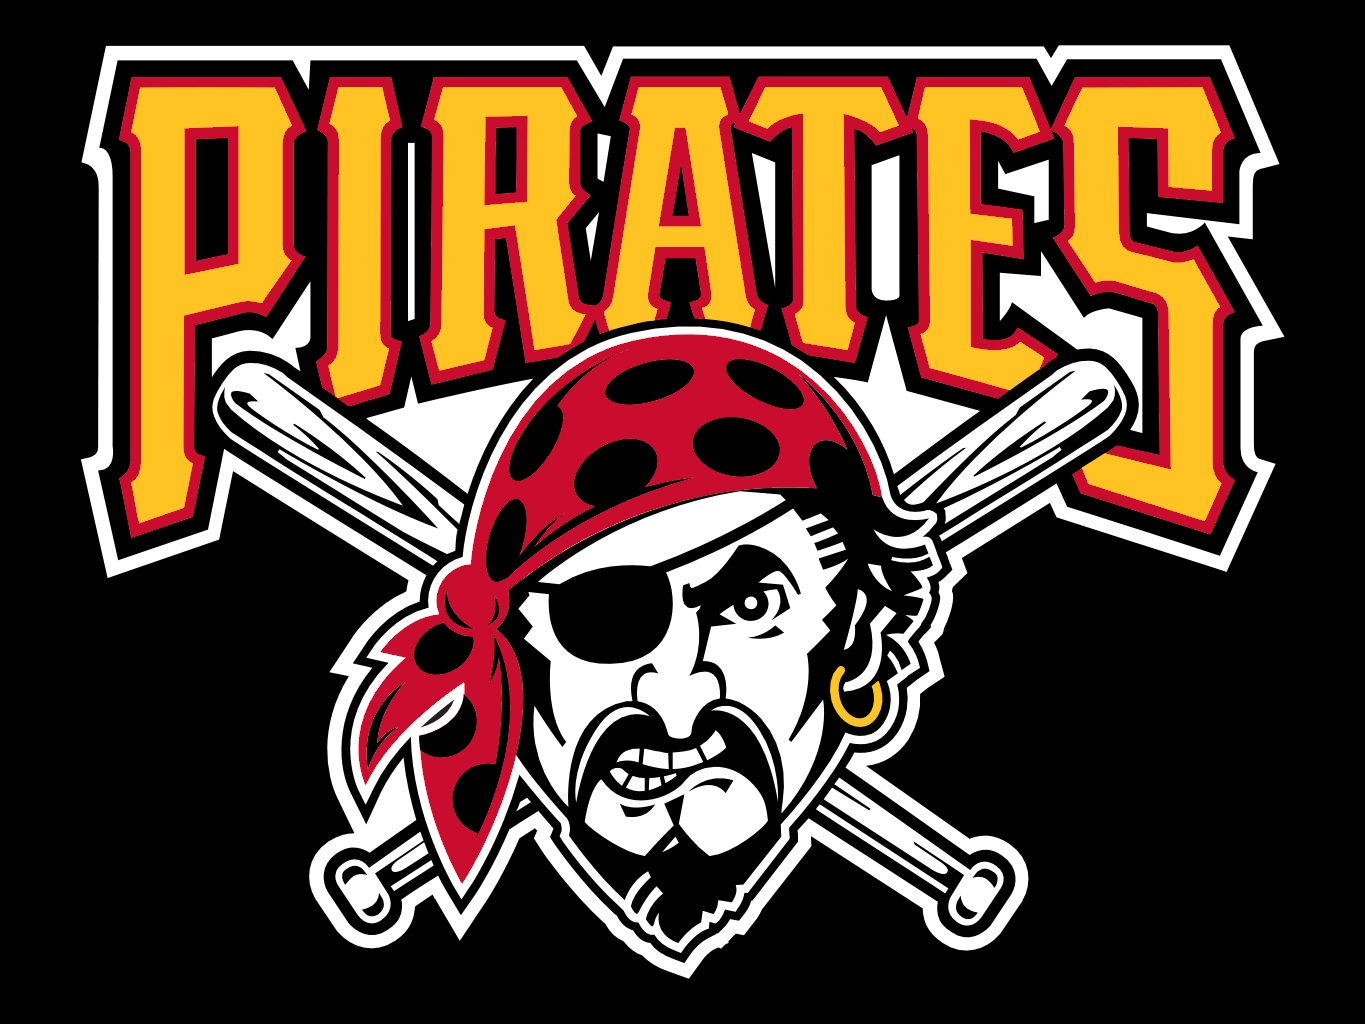 pittsburgh pirates logo wallpaper - wallpapersafari - Pittsburgh Pirates Coloring Pages